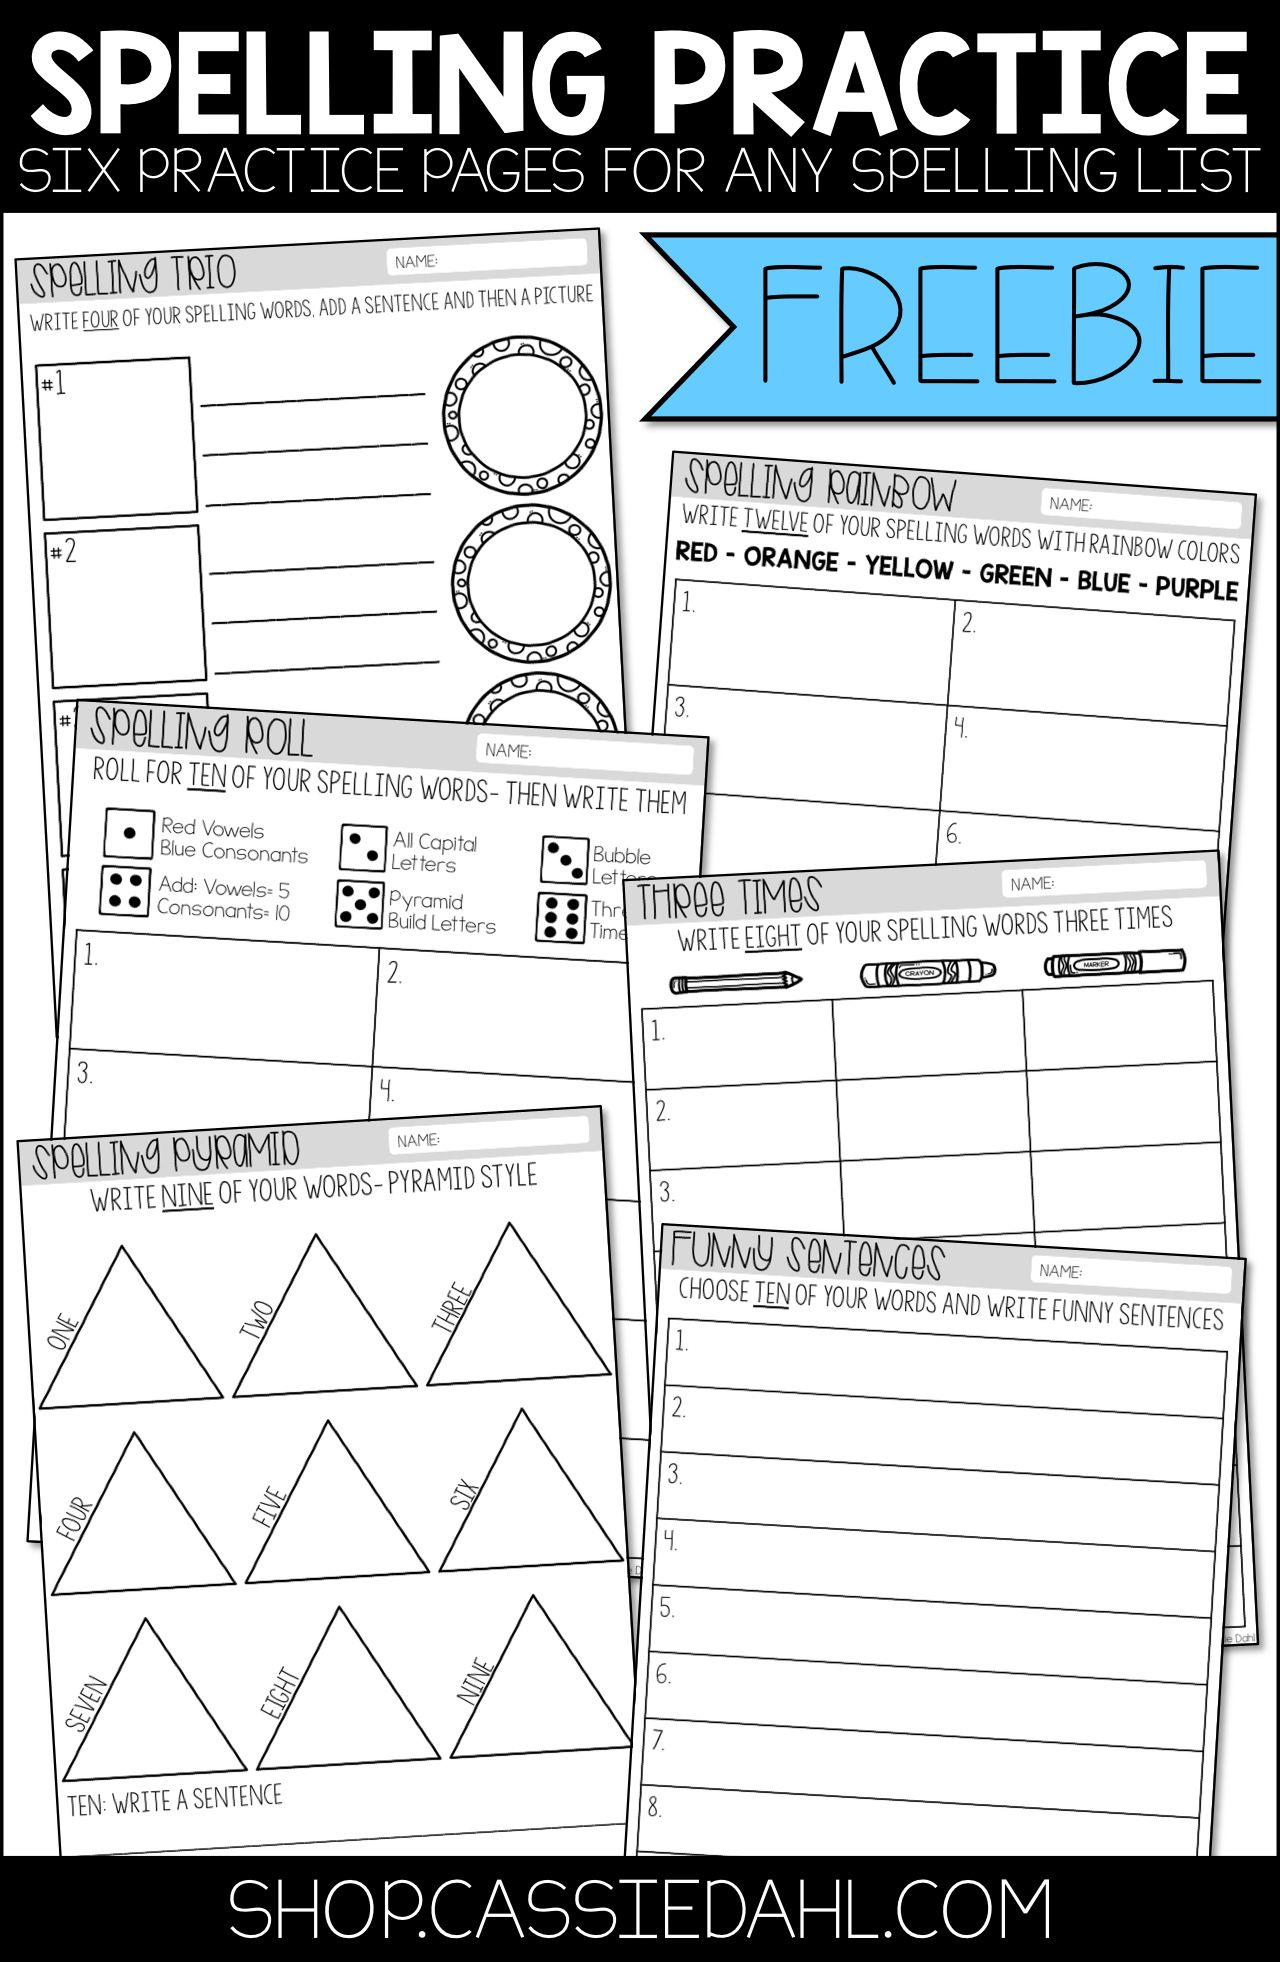 This Freebie Contains Six Practice Pages That You Can Use